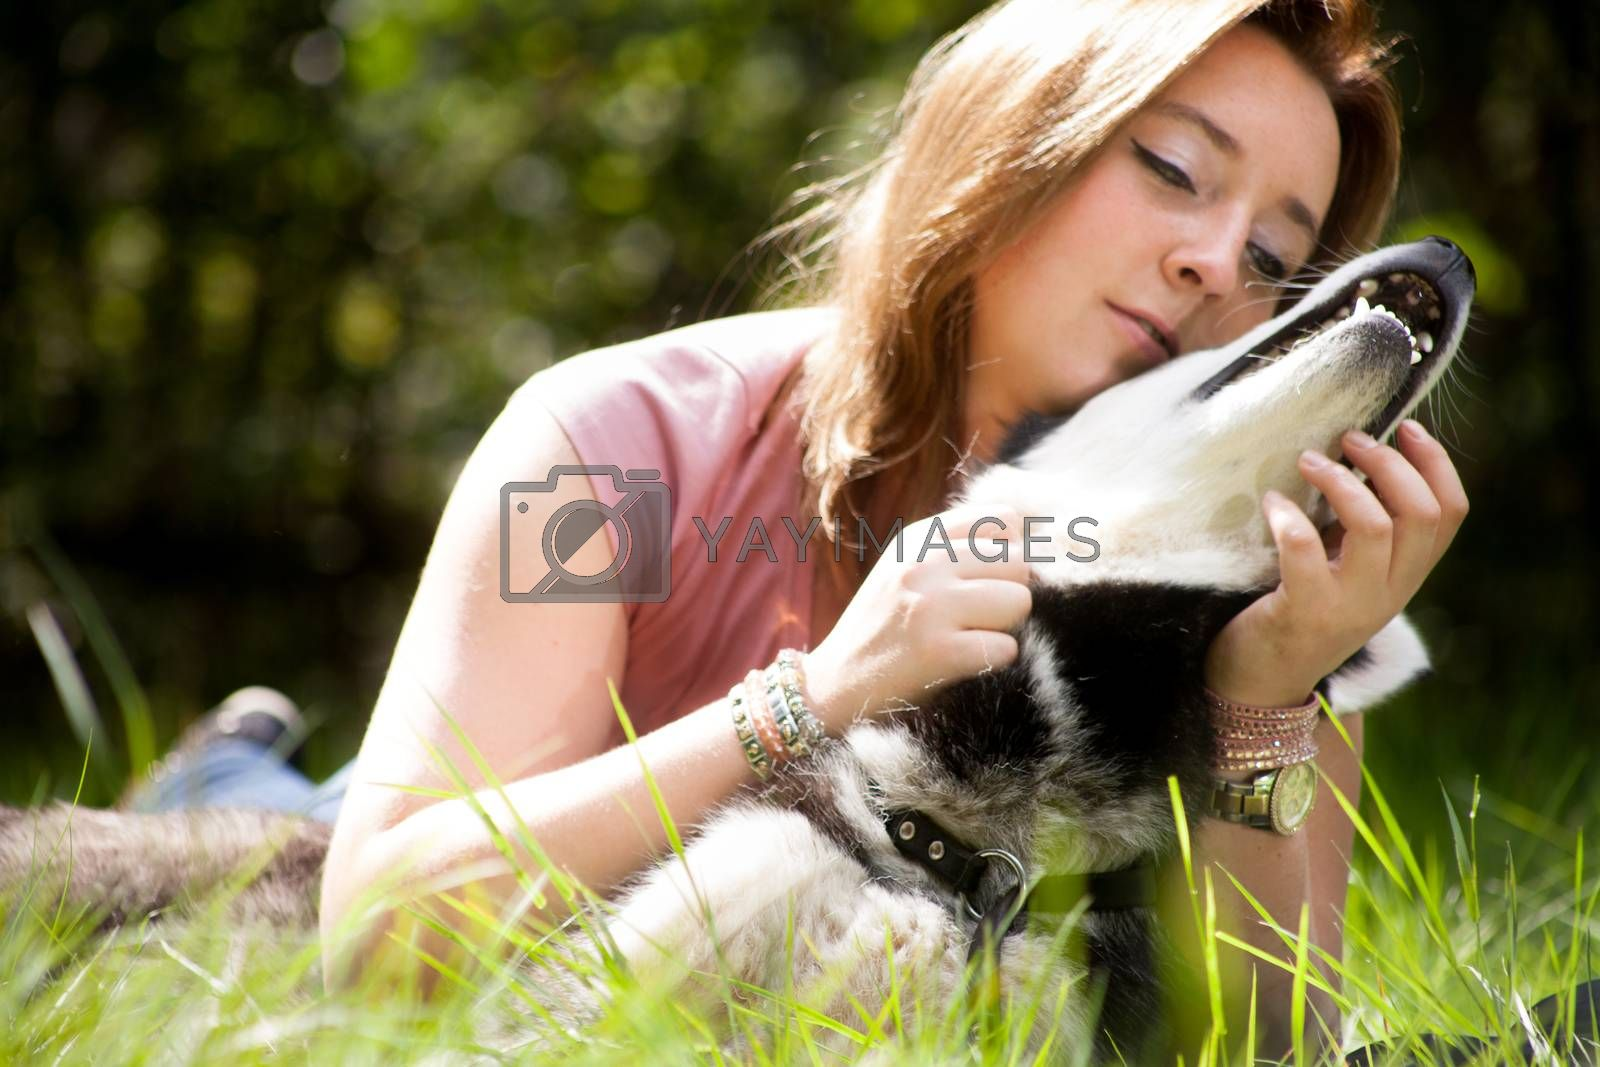 Dog and owner by DNFStyle